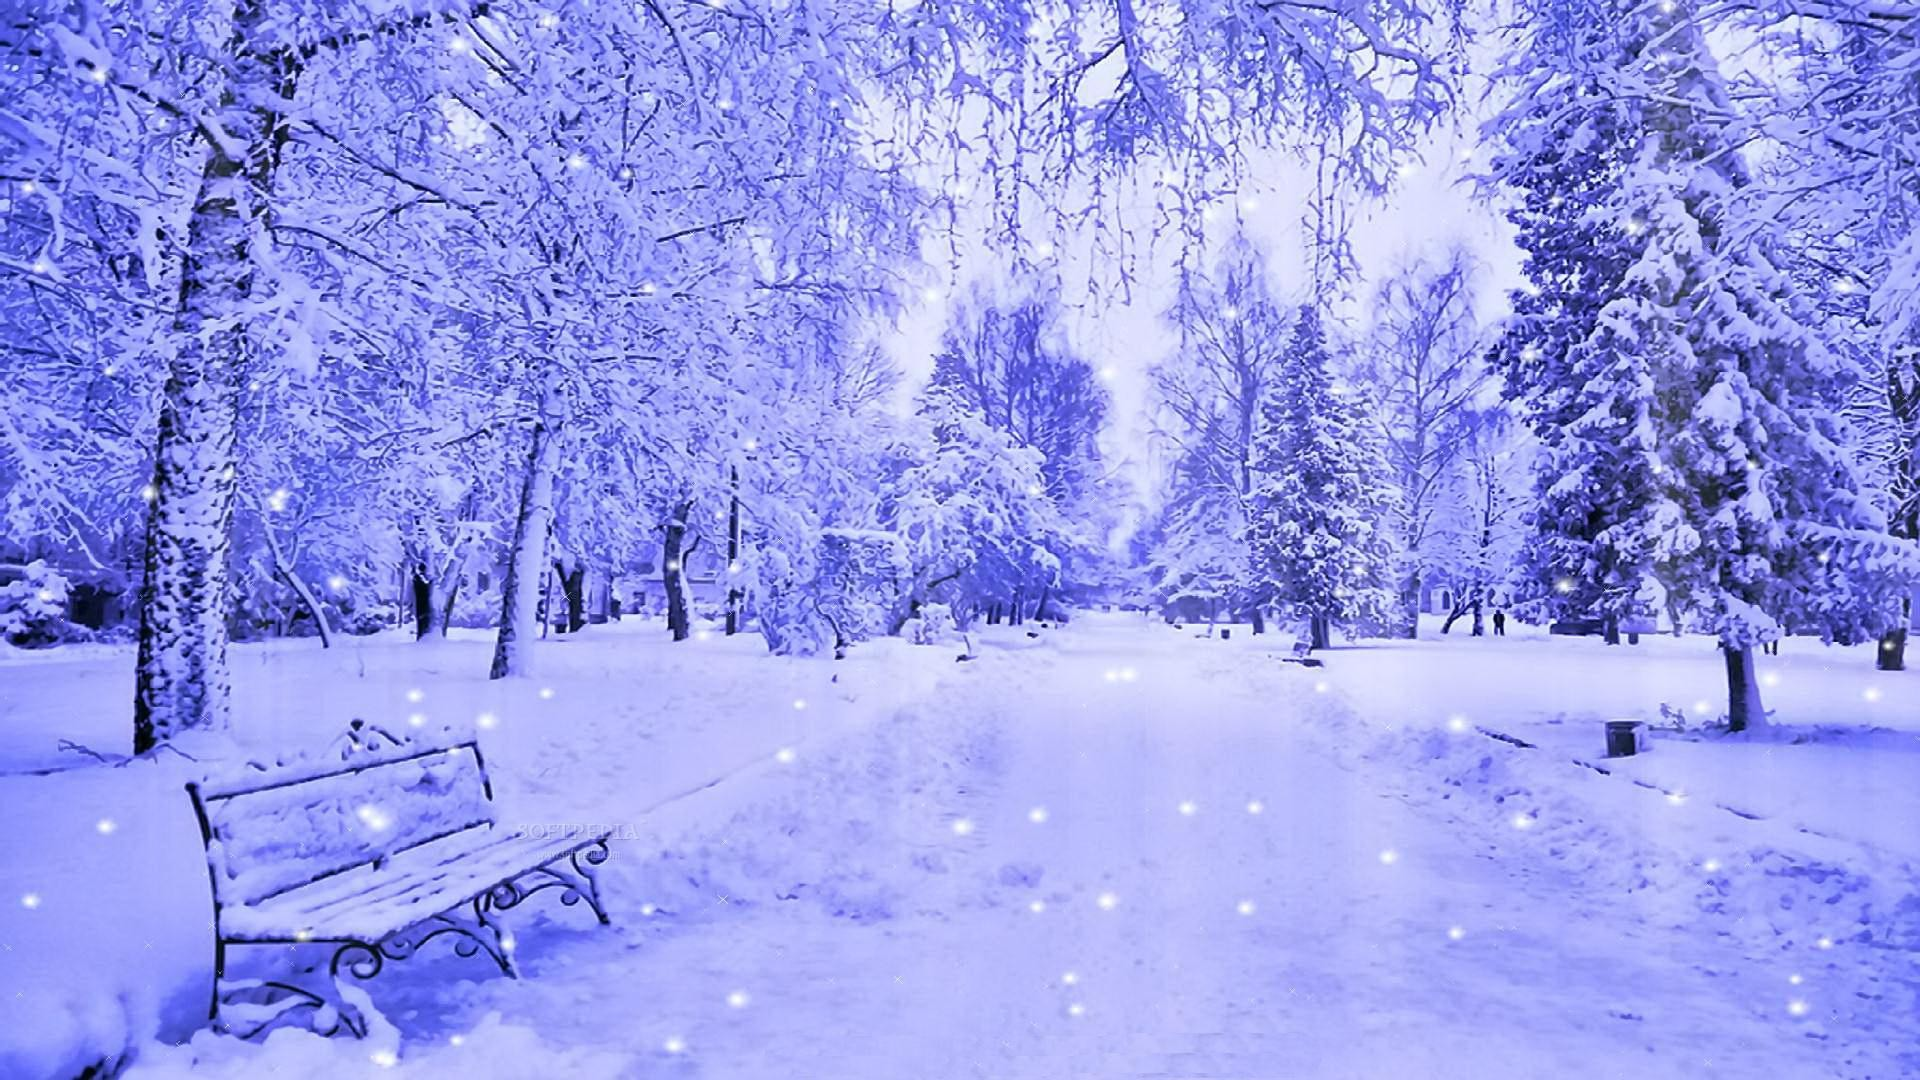 1920x1080 Snow Wallpapers - Wallpaper, High Definition, High Quality ... 1900x1200  widescreen ...